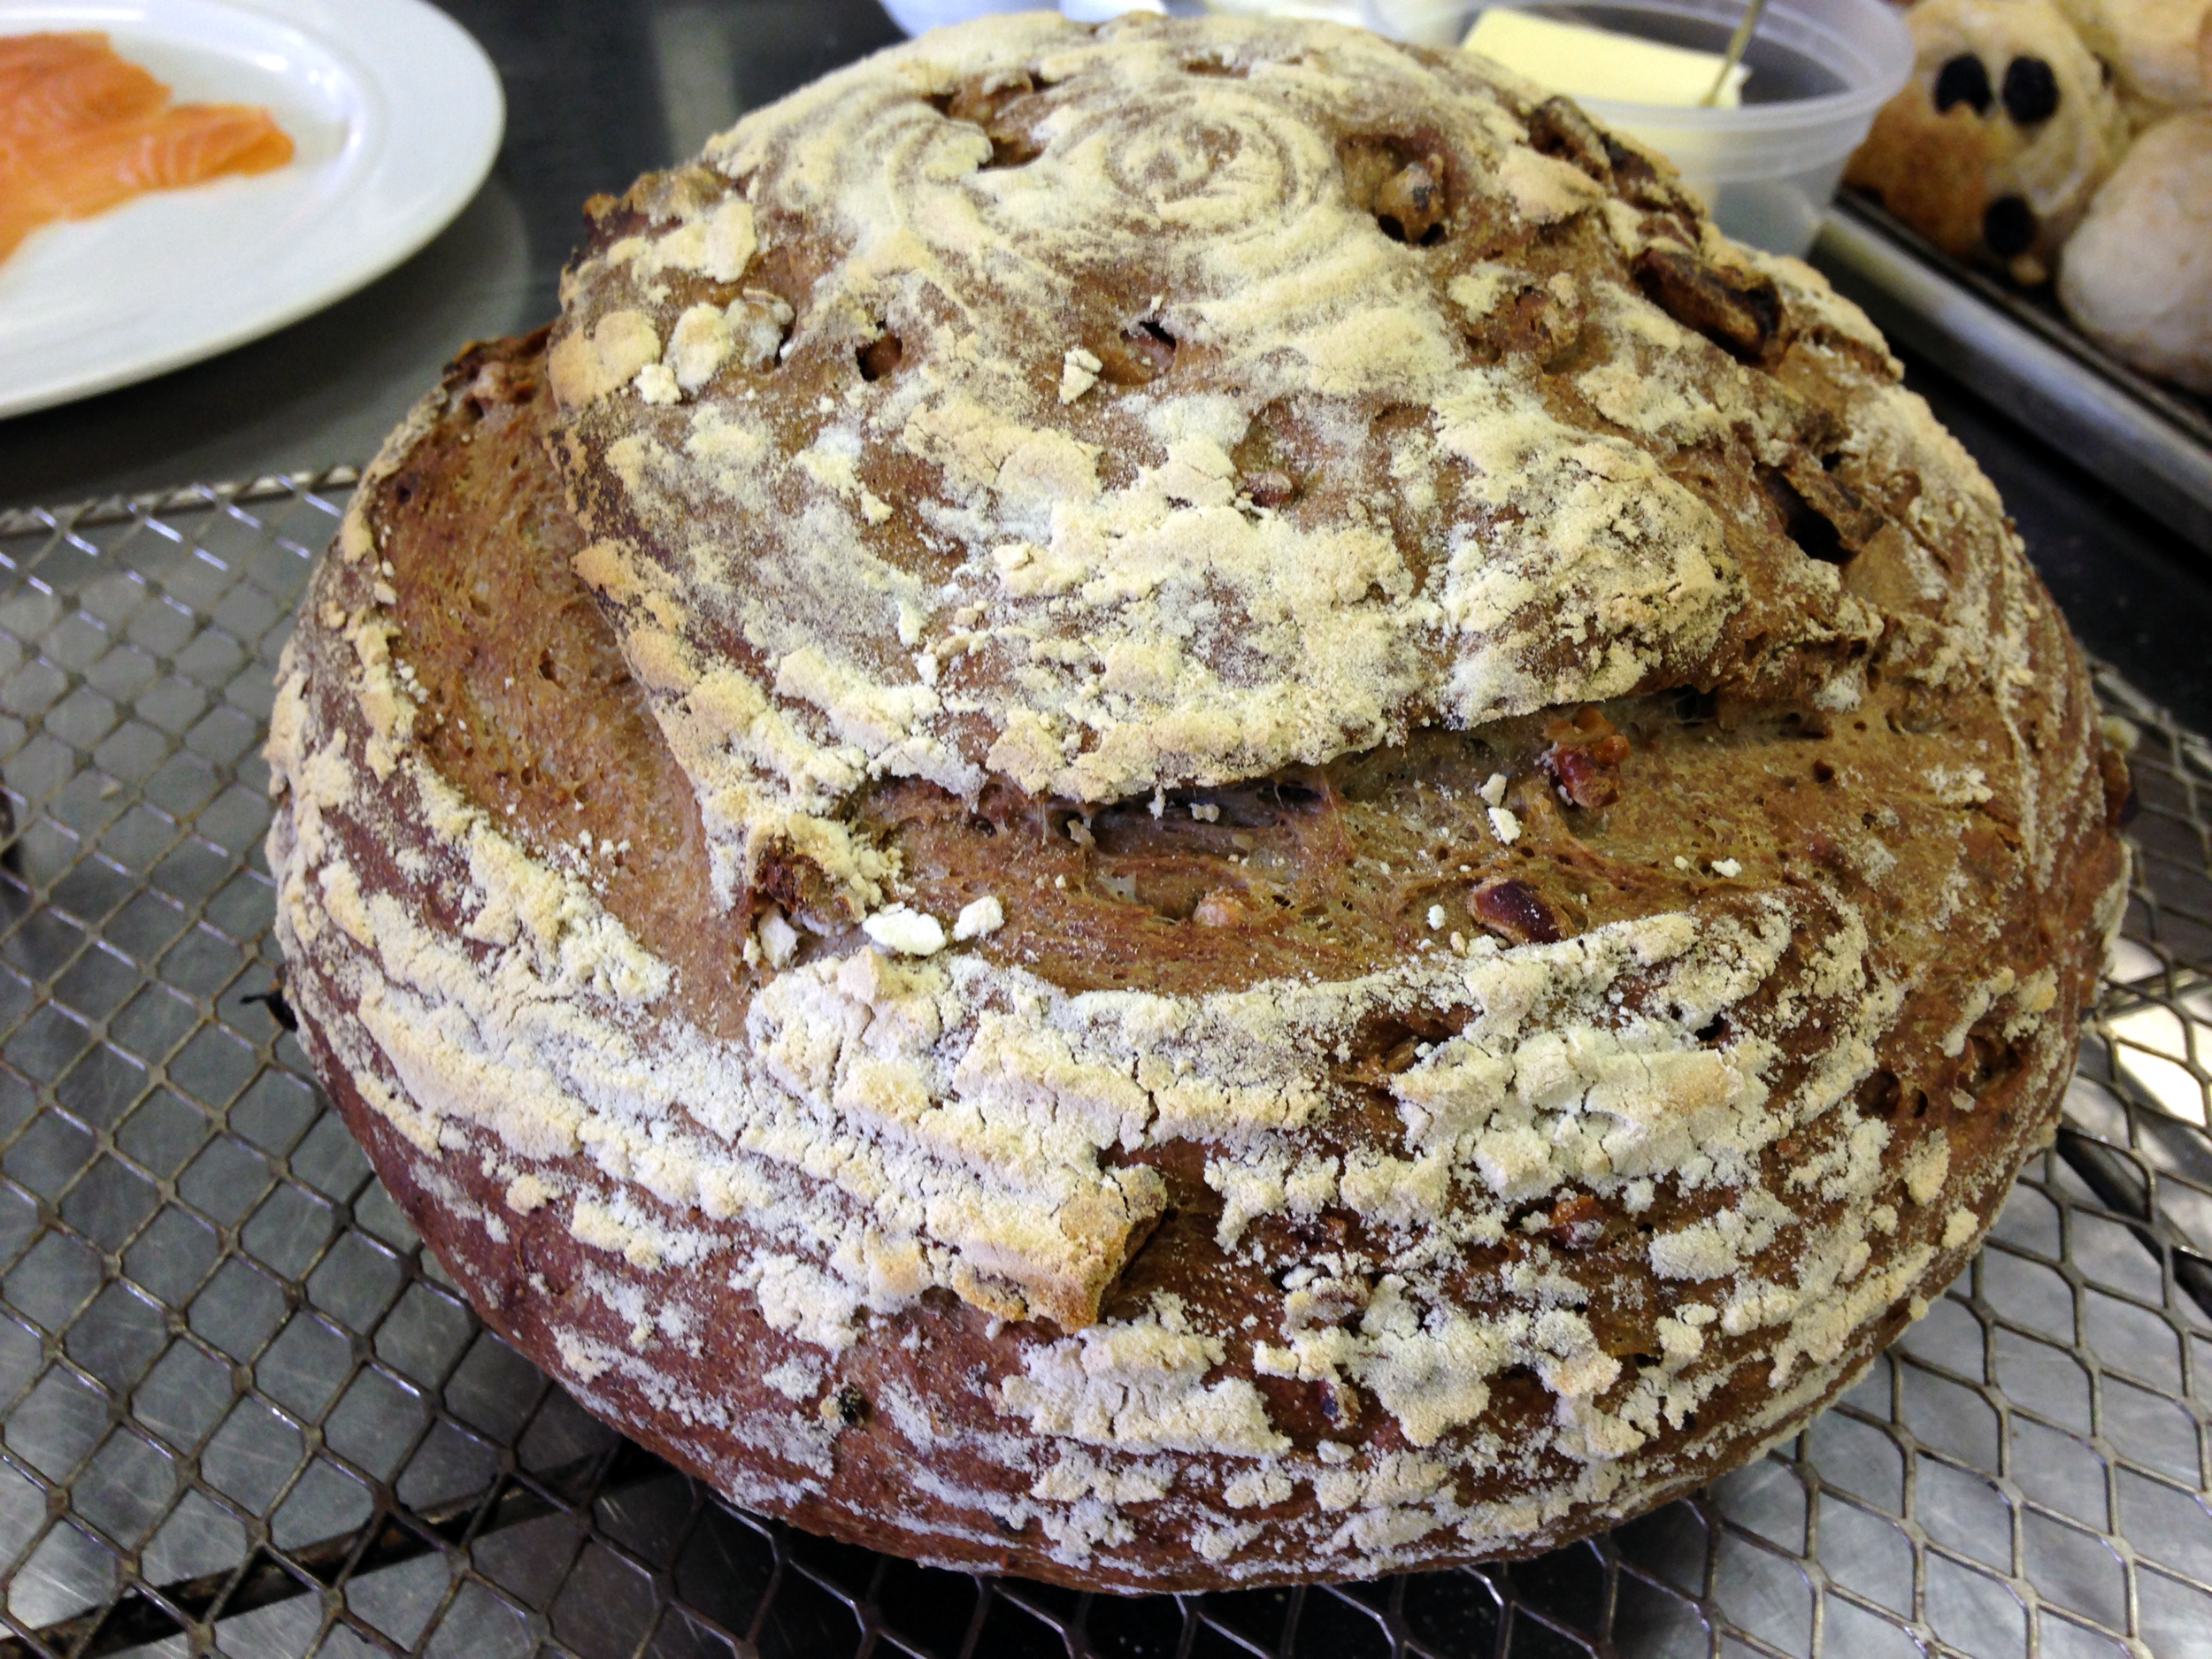 The wheat and walnut boule had a bit of rye flour, ground pepper, and coriander and was leavened with a combination of natural starter and commercial yeast.